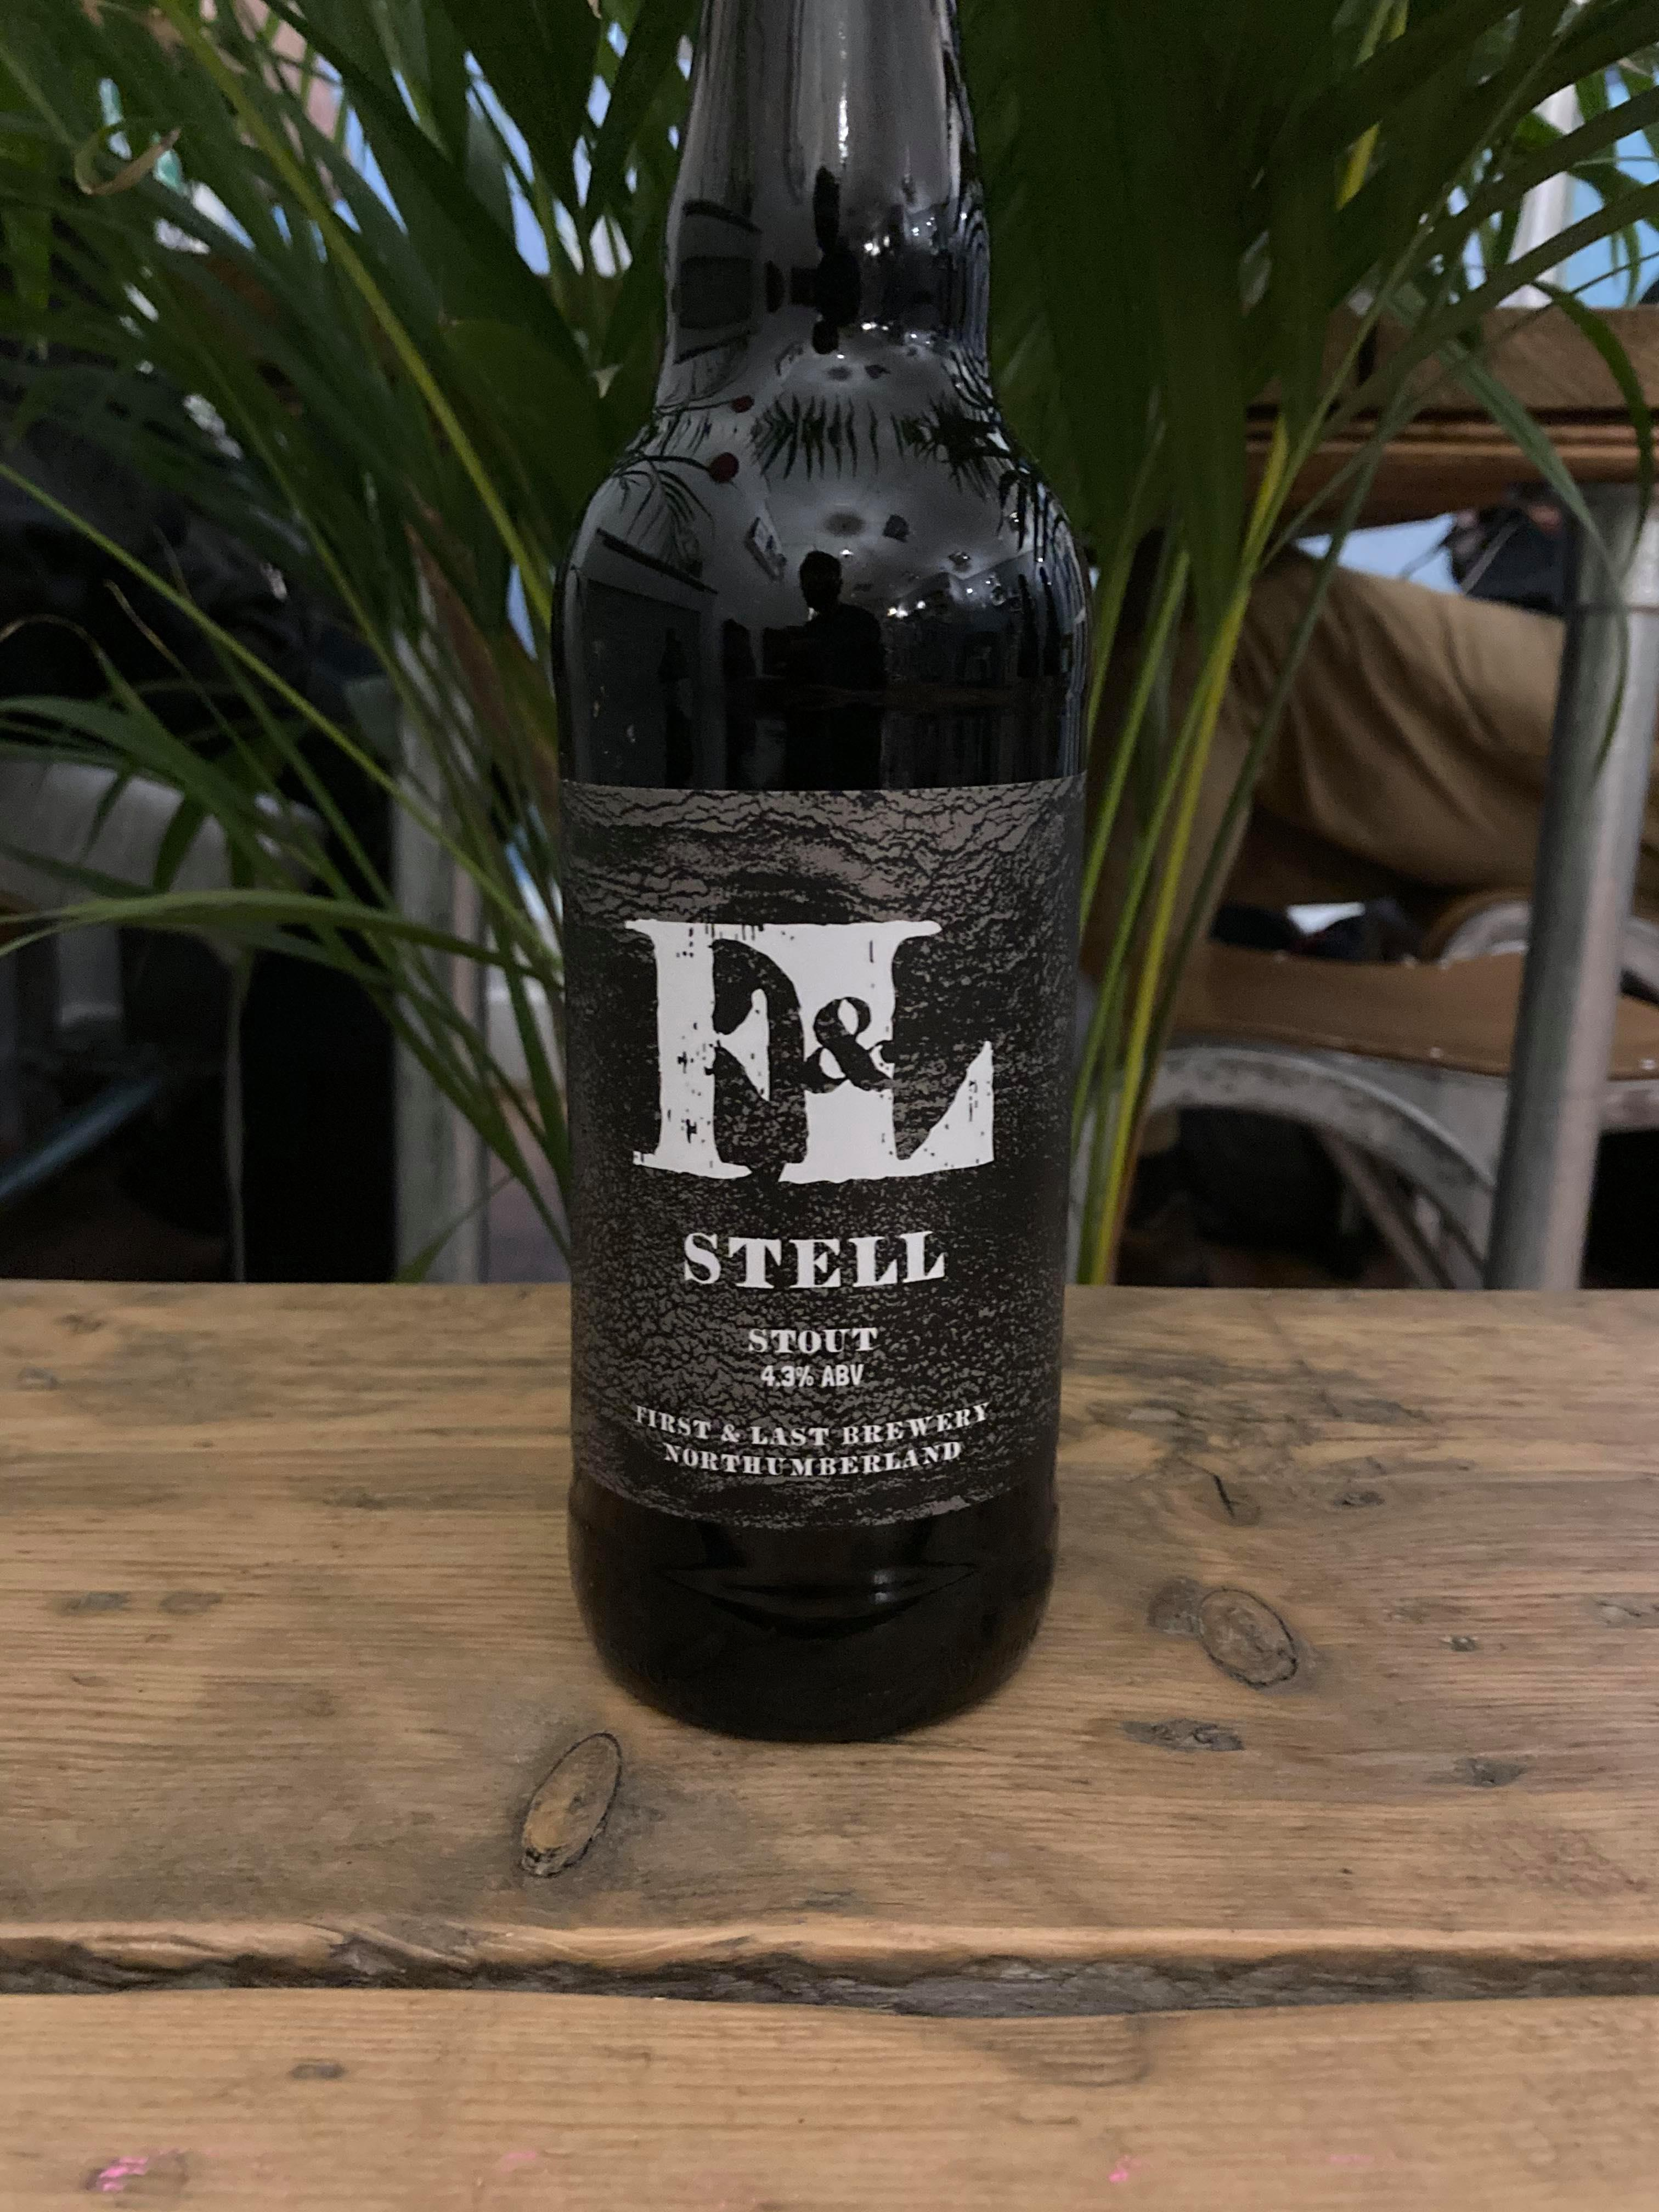 First & Last - Stell 4.3%